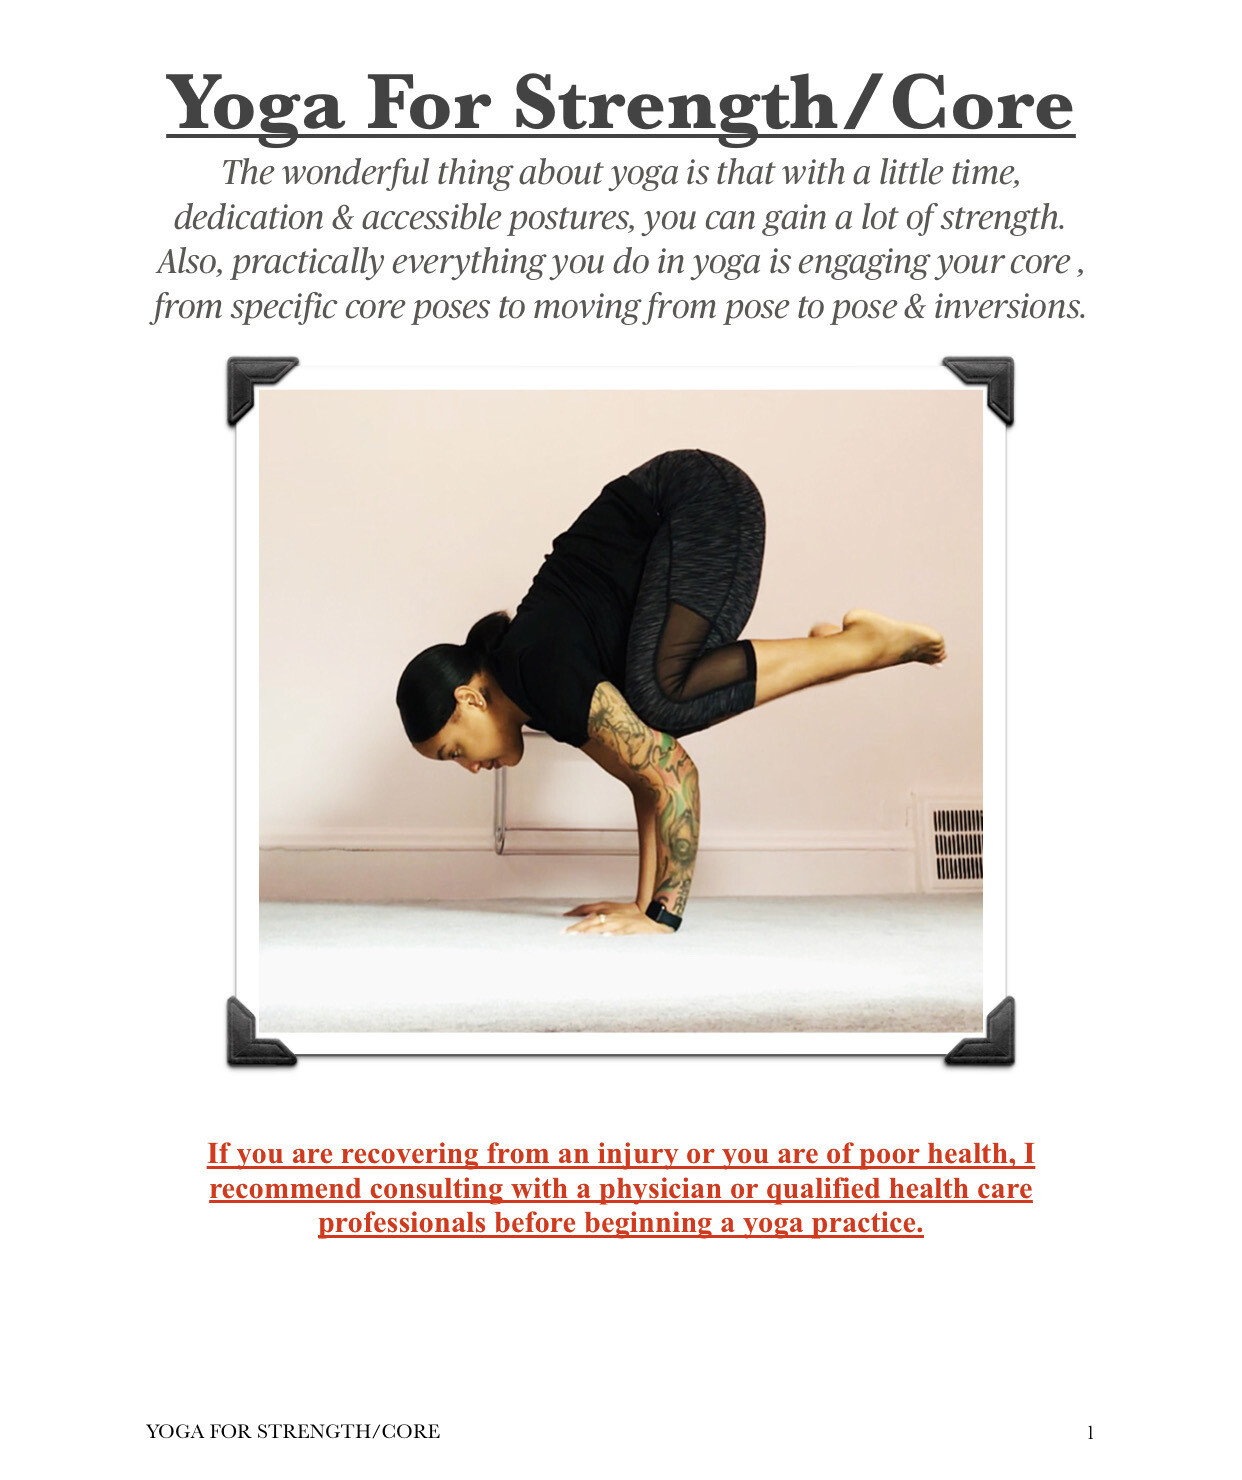 Yoga For Strength/Core